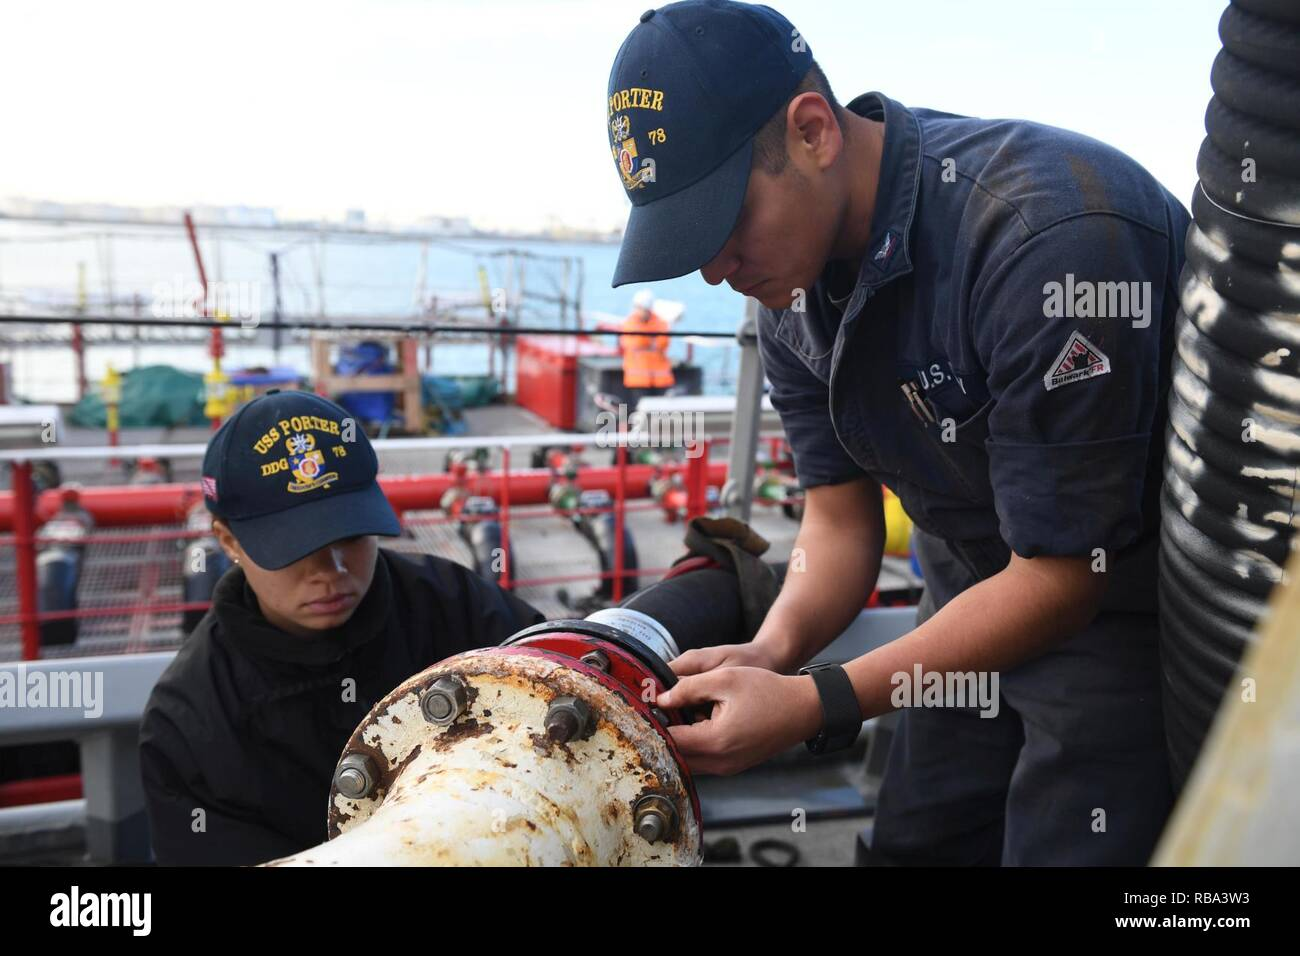 VALENCIA, Spain (Dec. 20, 2016) Petty Officers 3rd Class Giana Hardin, left, and Enrique Gonzalez connect a fuel line to the guided-missile destroyer USS Porter (DDG 78) as it prepares to take on fuel pier-side in Valencia, Spain. Porter, forward-deployed to Rota, Spain, is conducting naval operations in the U.S. 6th Fleet area of operations in support of U.S. national security interests in Europe. Stock Photo